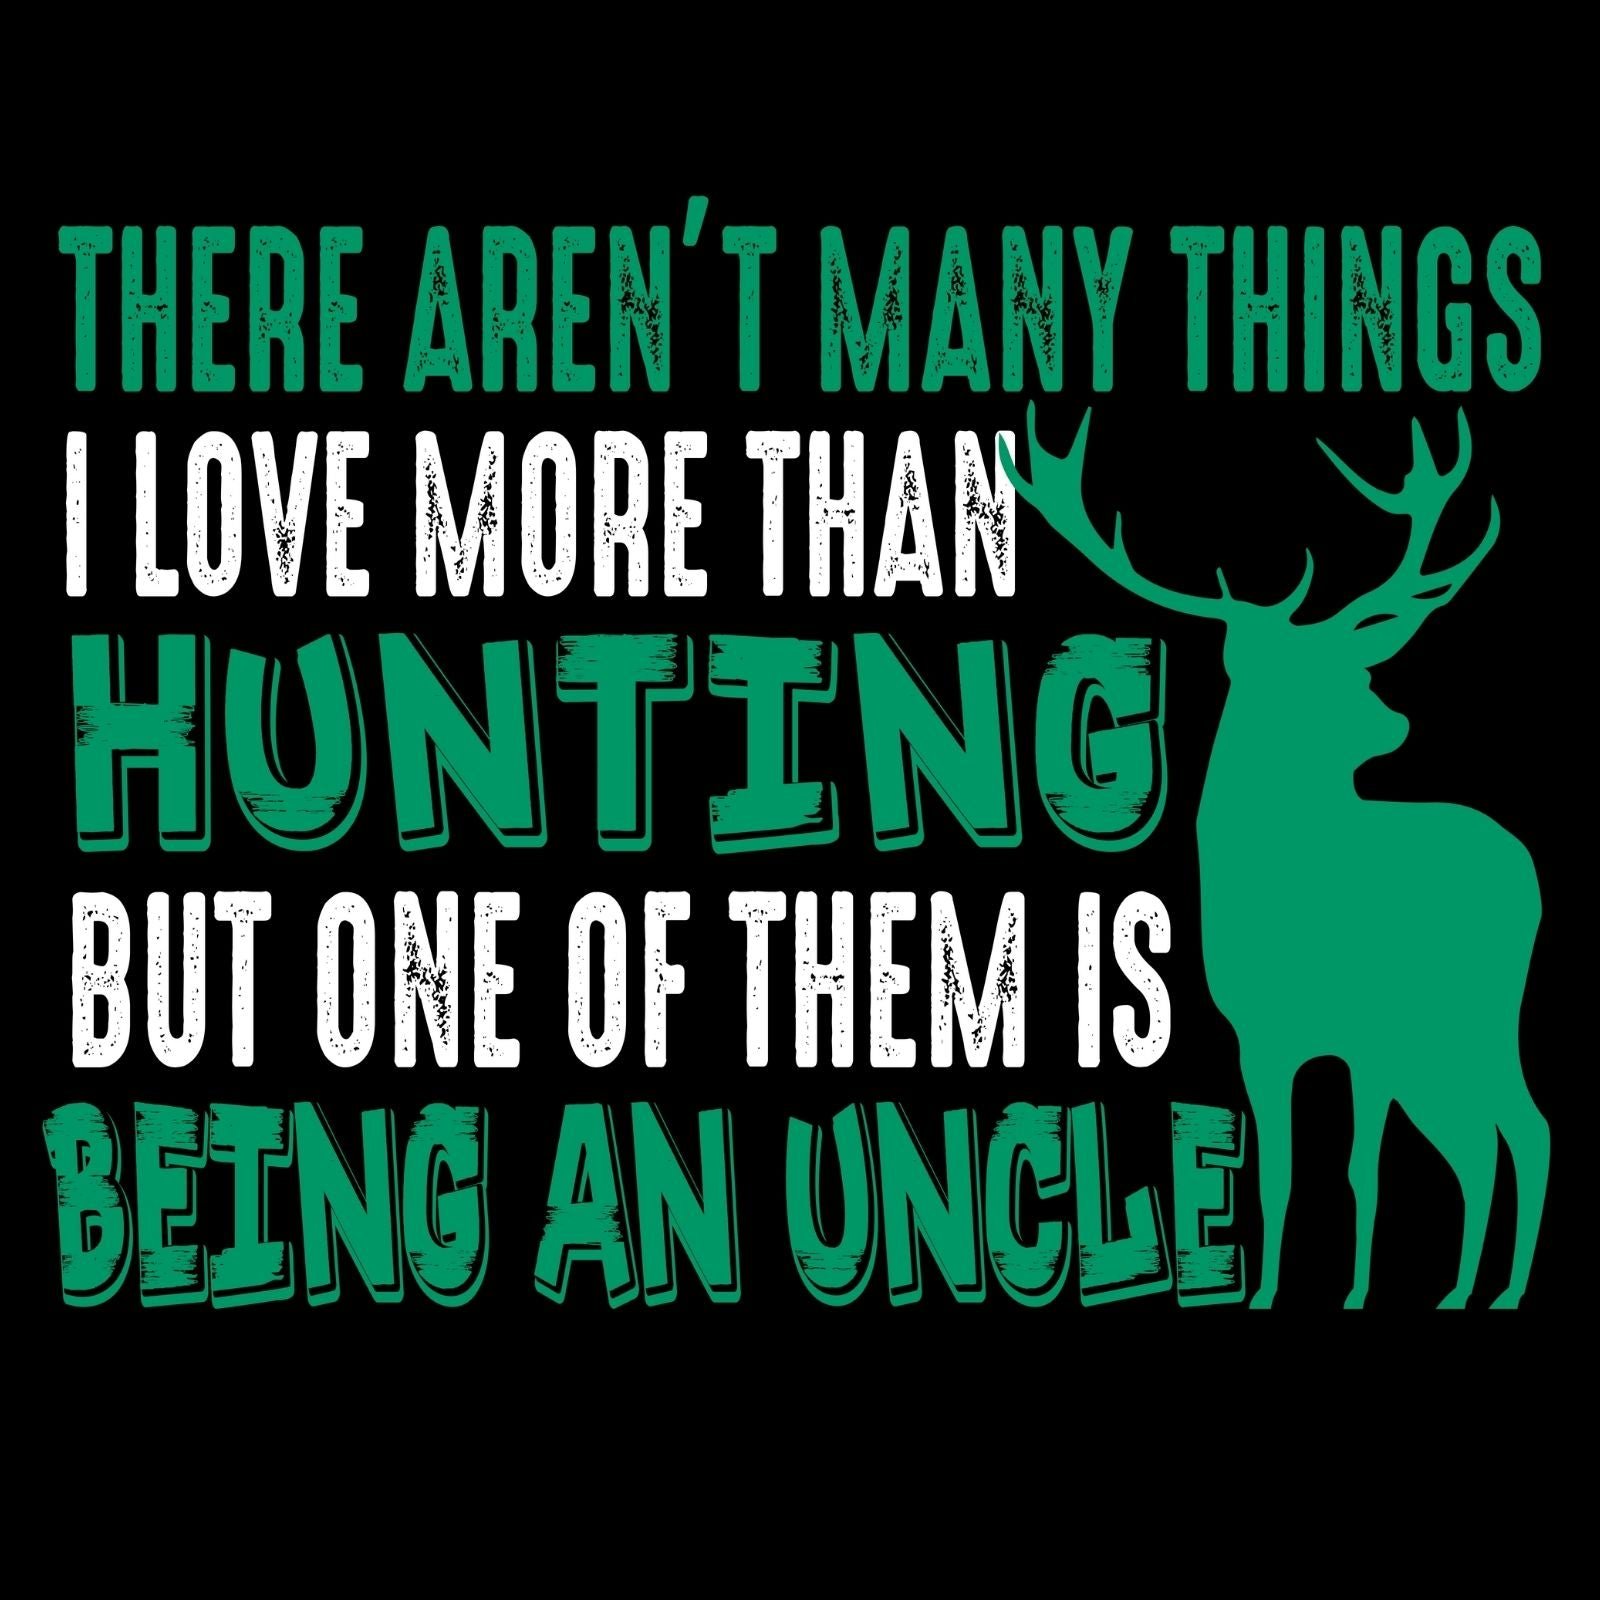 There Aren't Many Things I Love More Than Hunting But One Of Them Is Being AN Uncle - Bastard Graphics